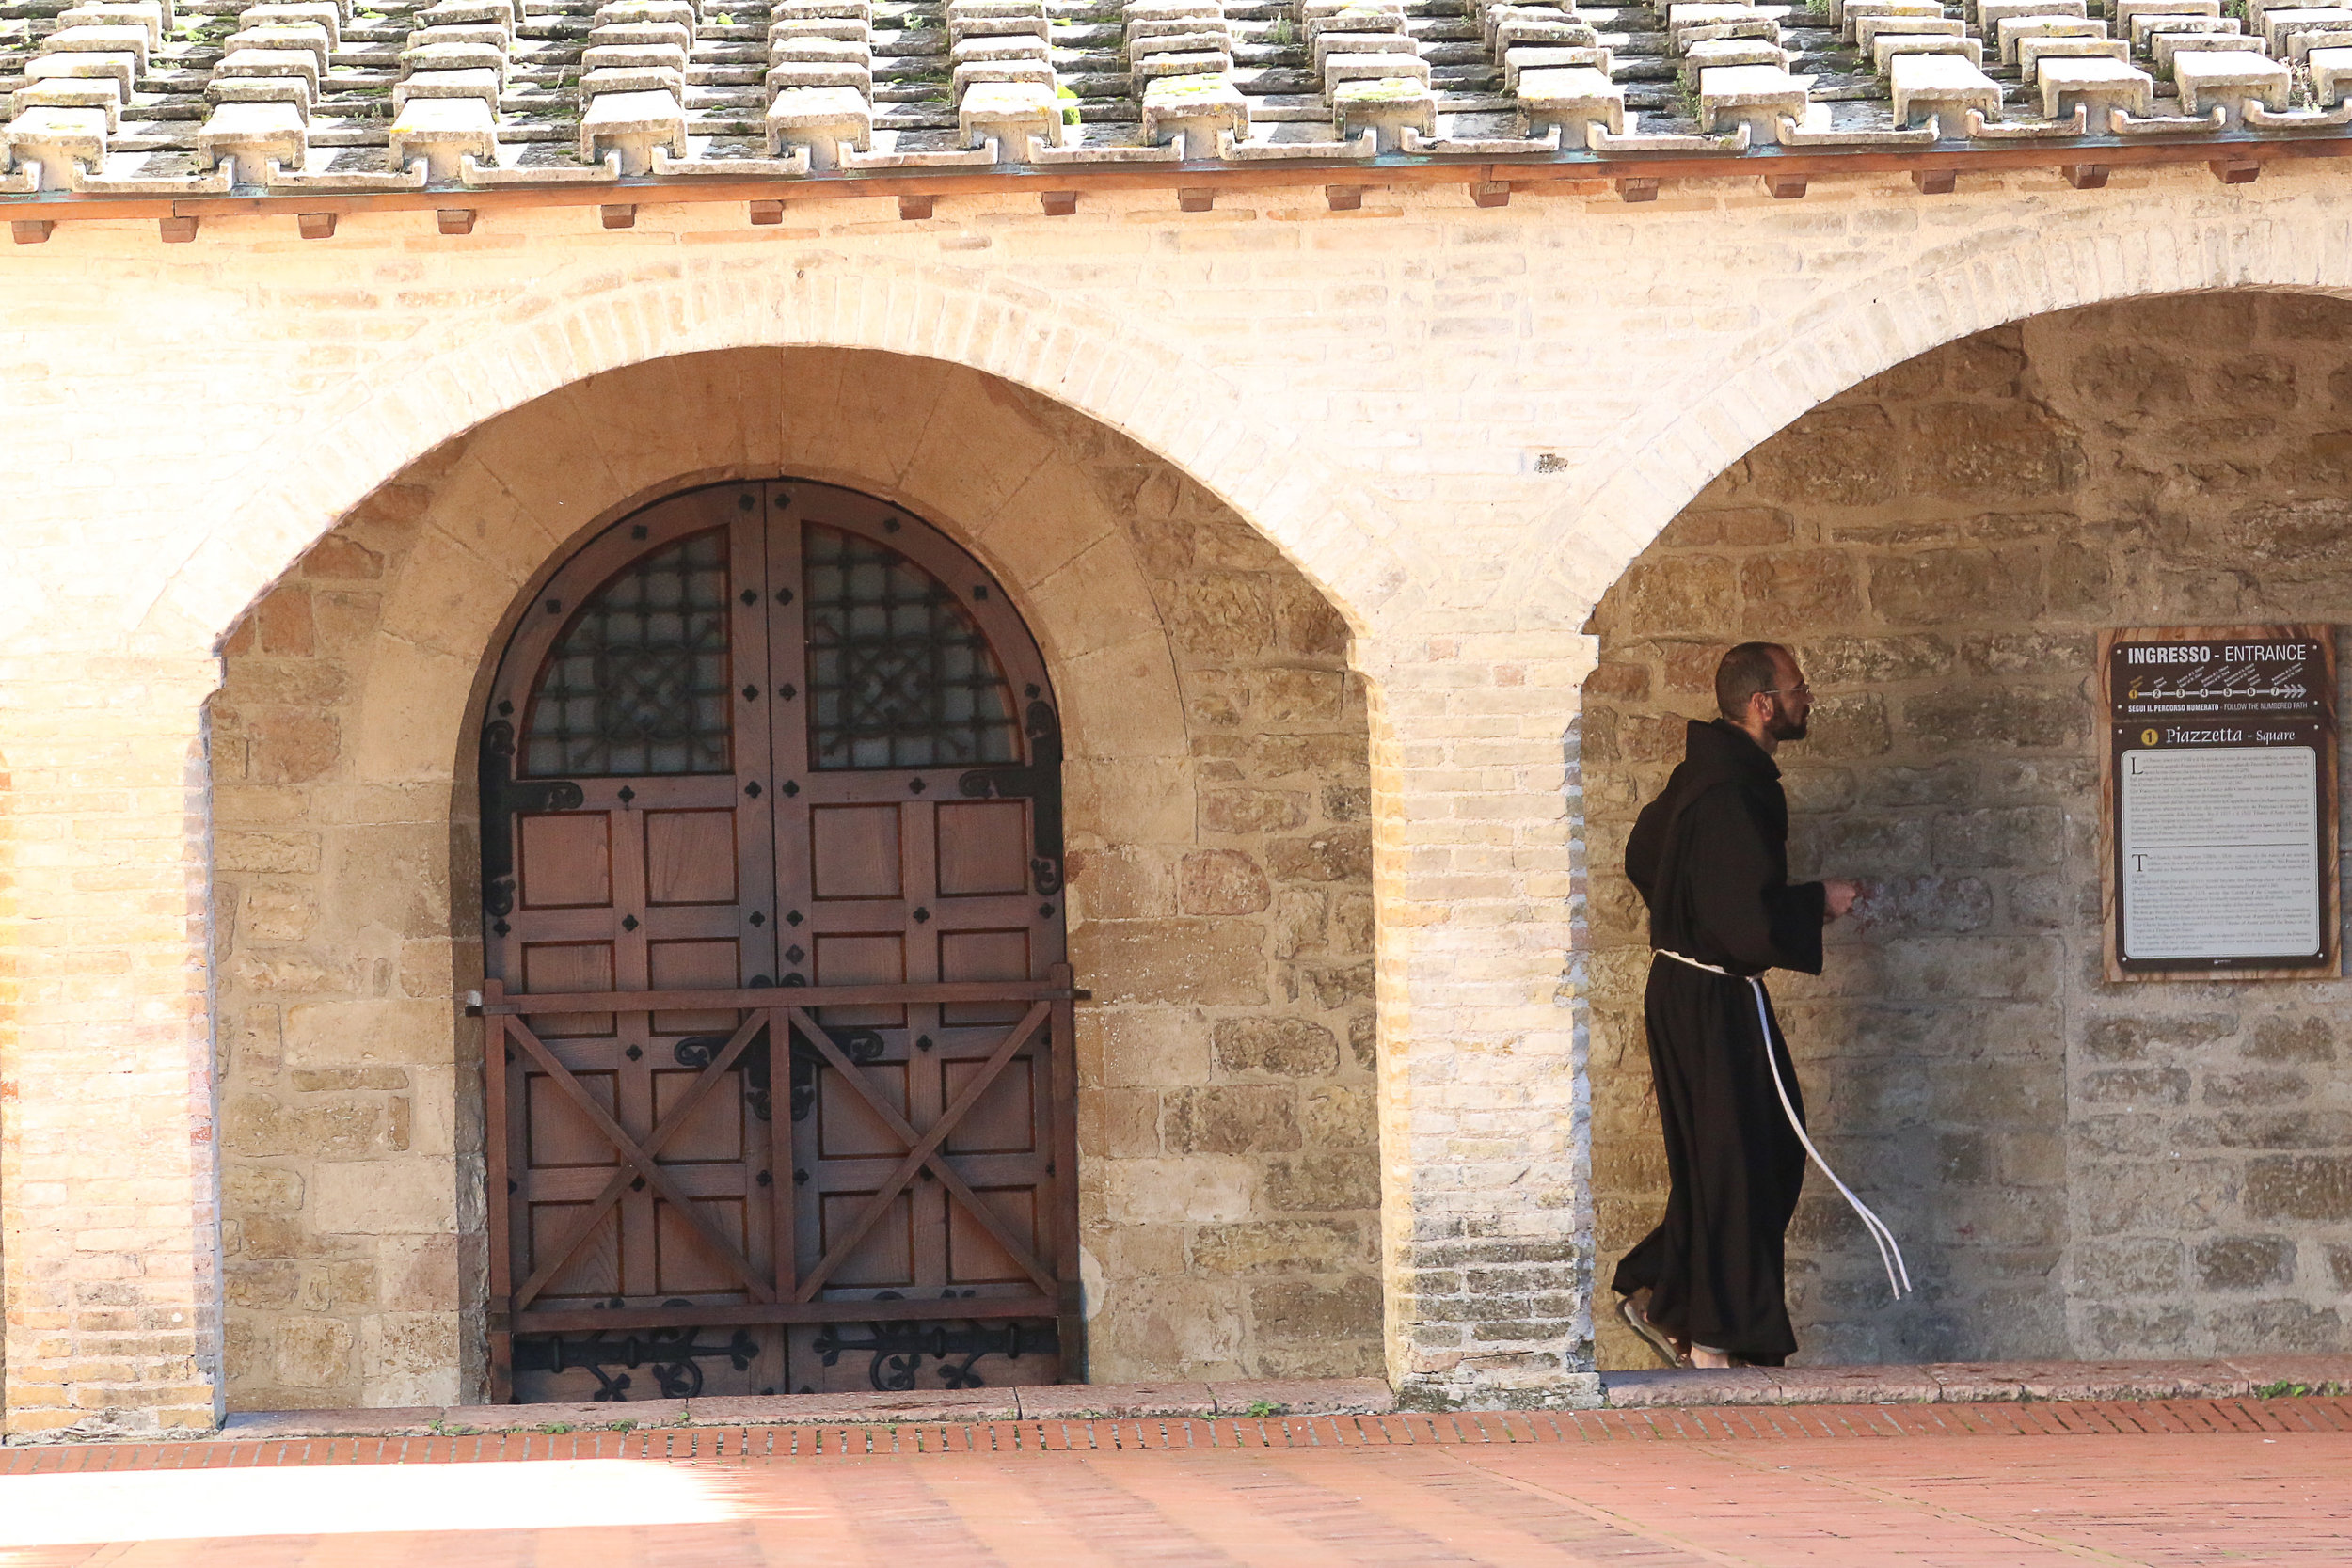 Friar at San Damiano